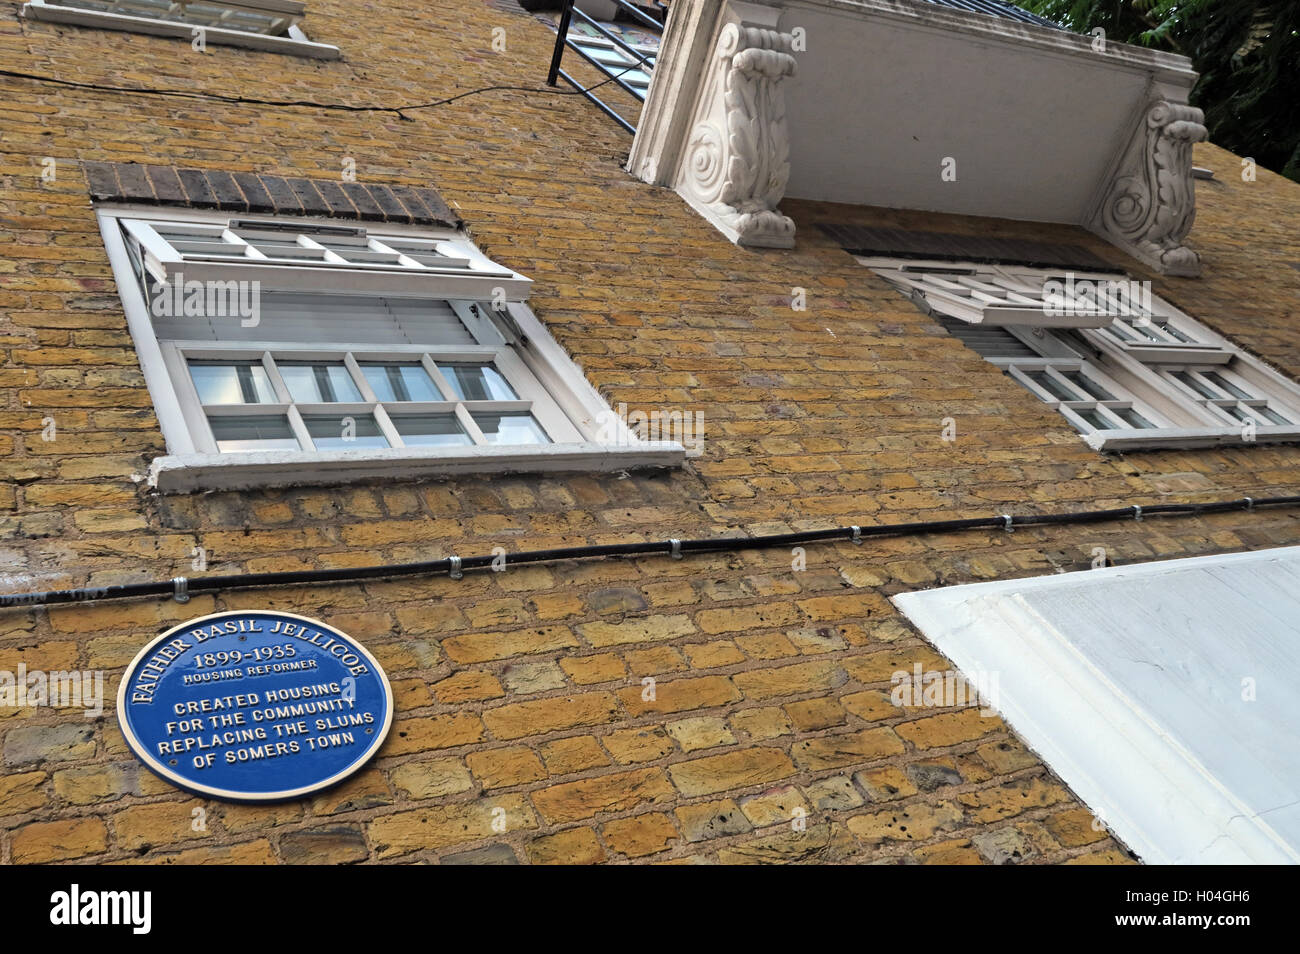 Somers Town,Euston,Father Basil Jellicoe memorial - Stock Image